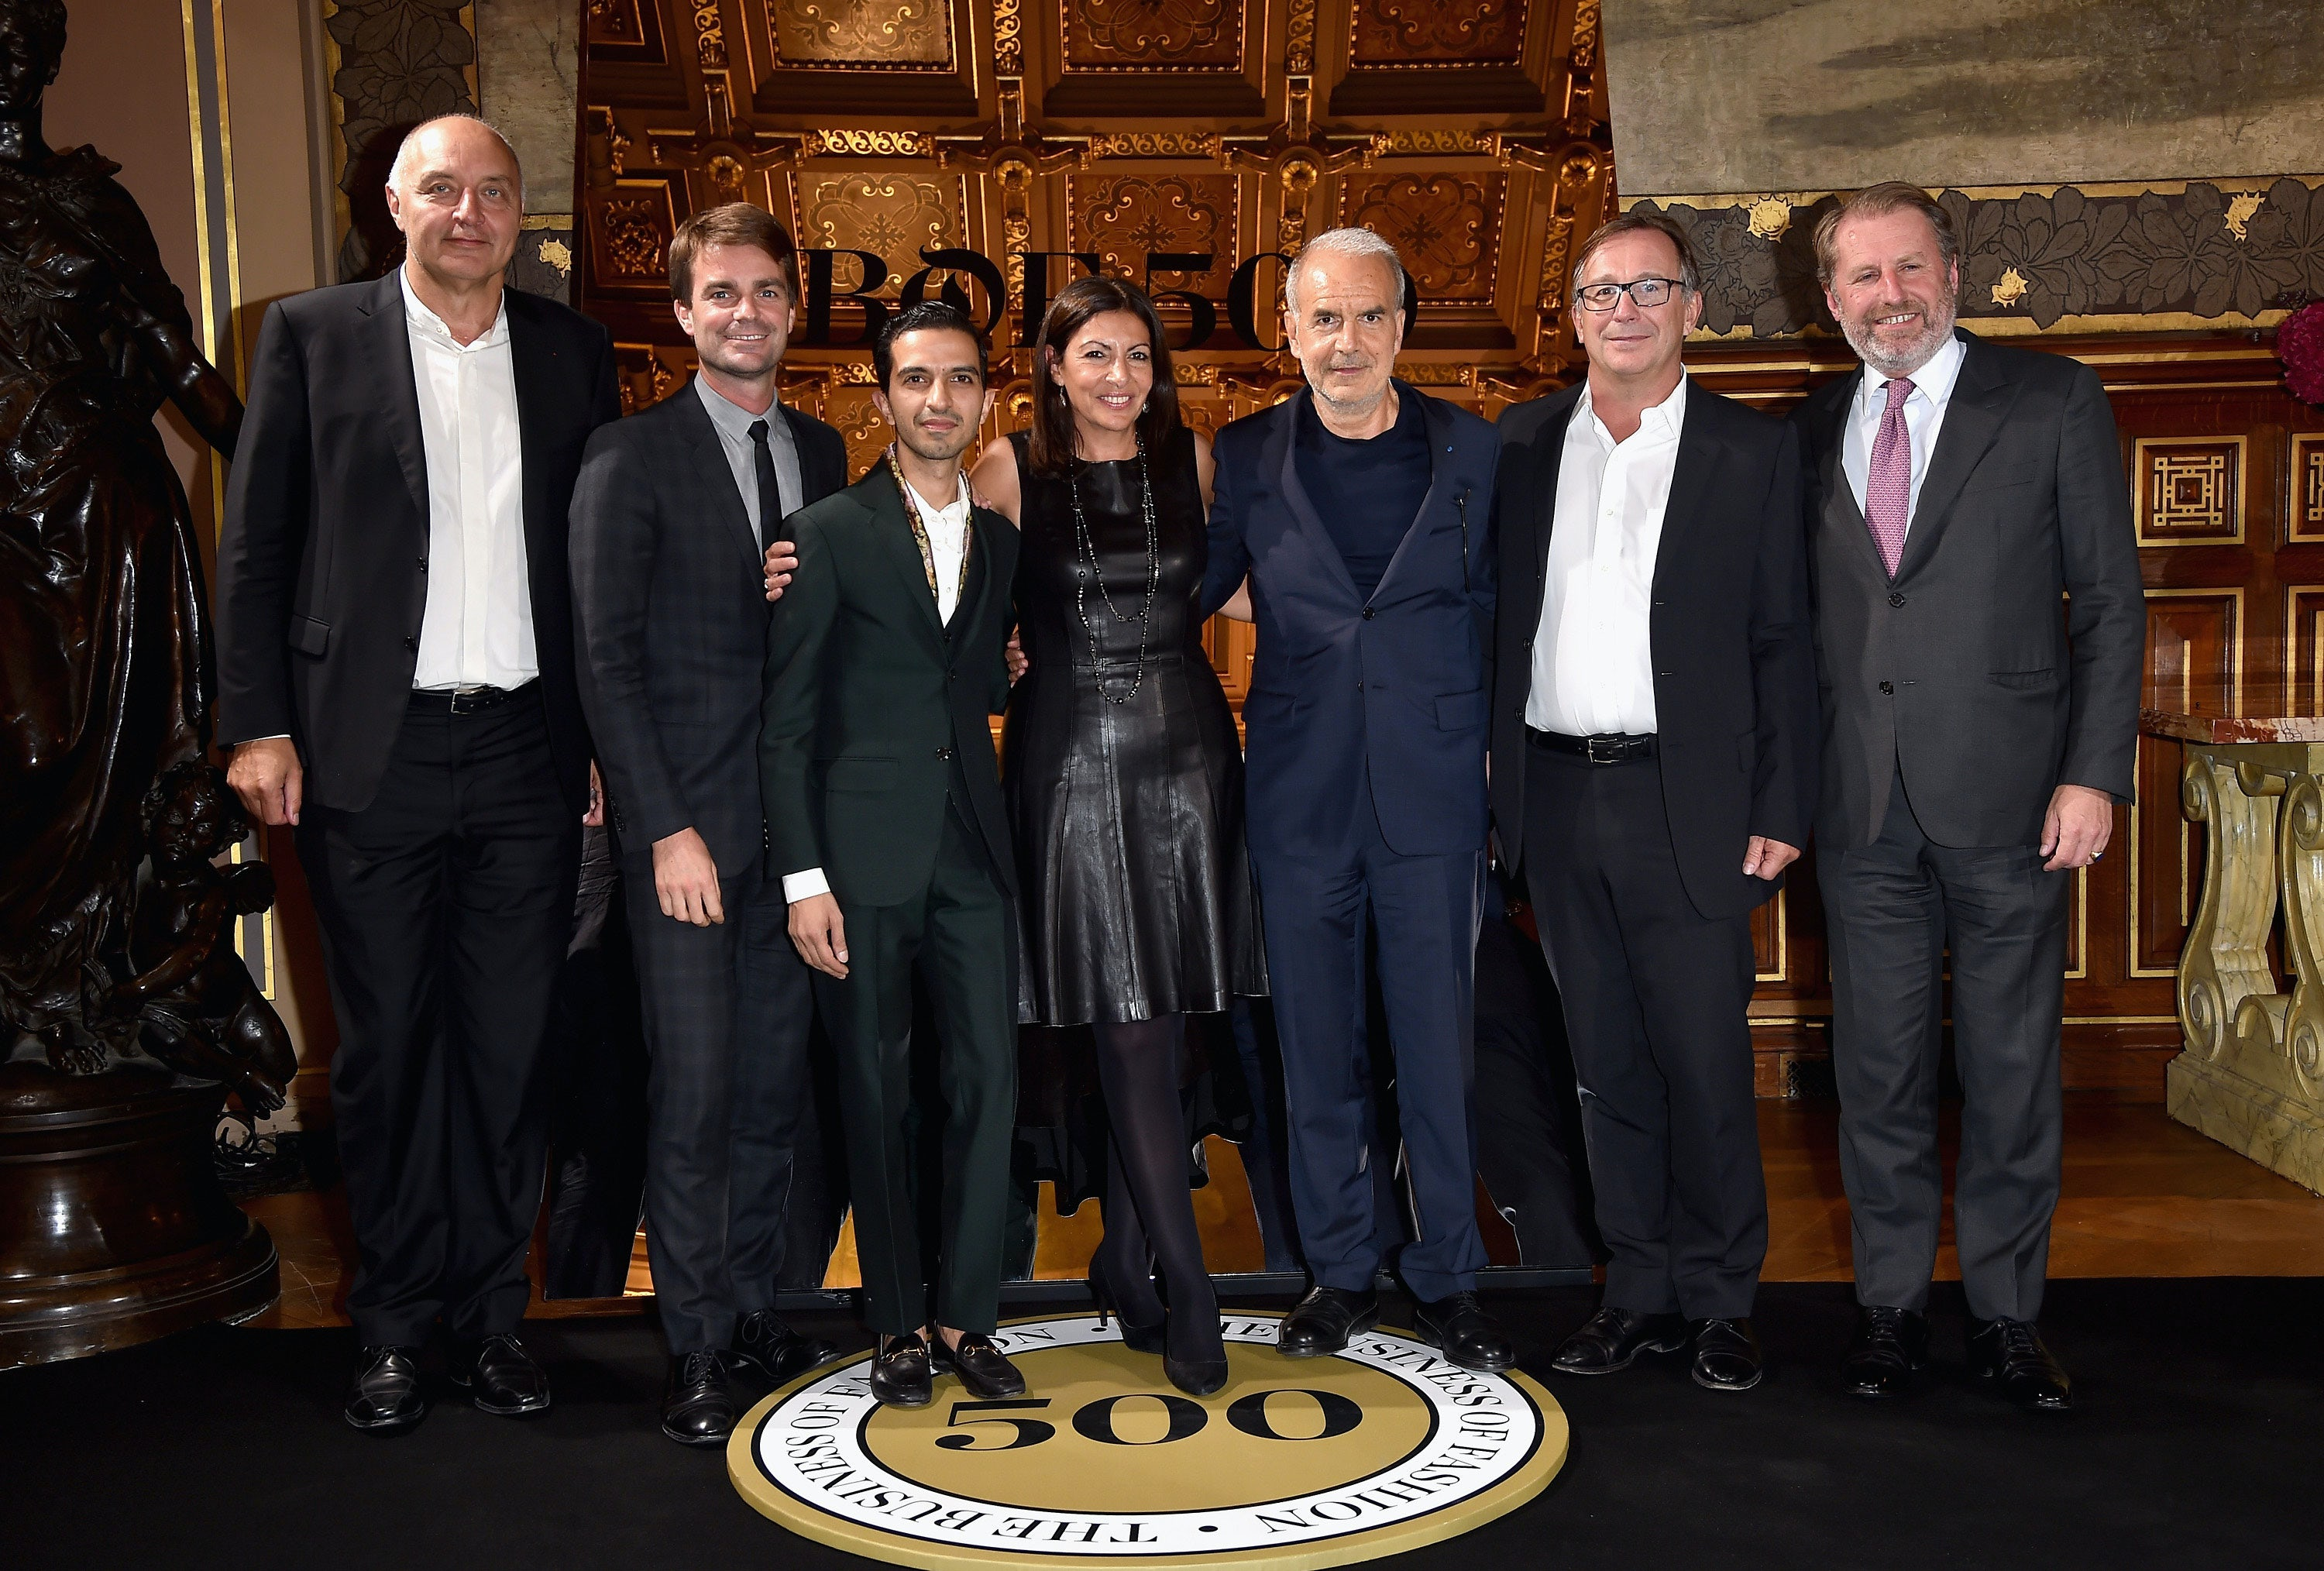 From left: Pascal Morand, Bruno Juilliard, Imran Amed, Anne Hidalgo, Ralph Toledano, Bruno Pavlovsky, Guillaume de Seynes | Photo: Getty